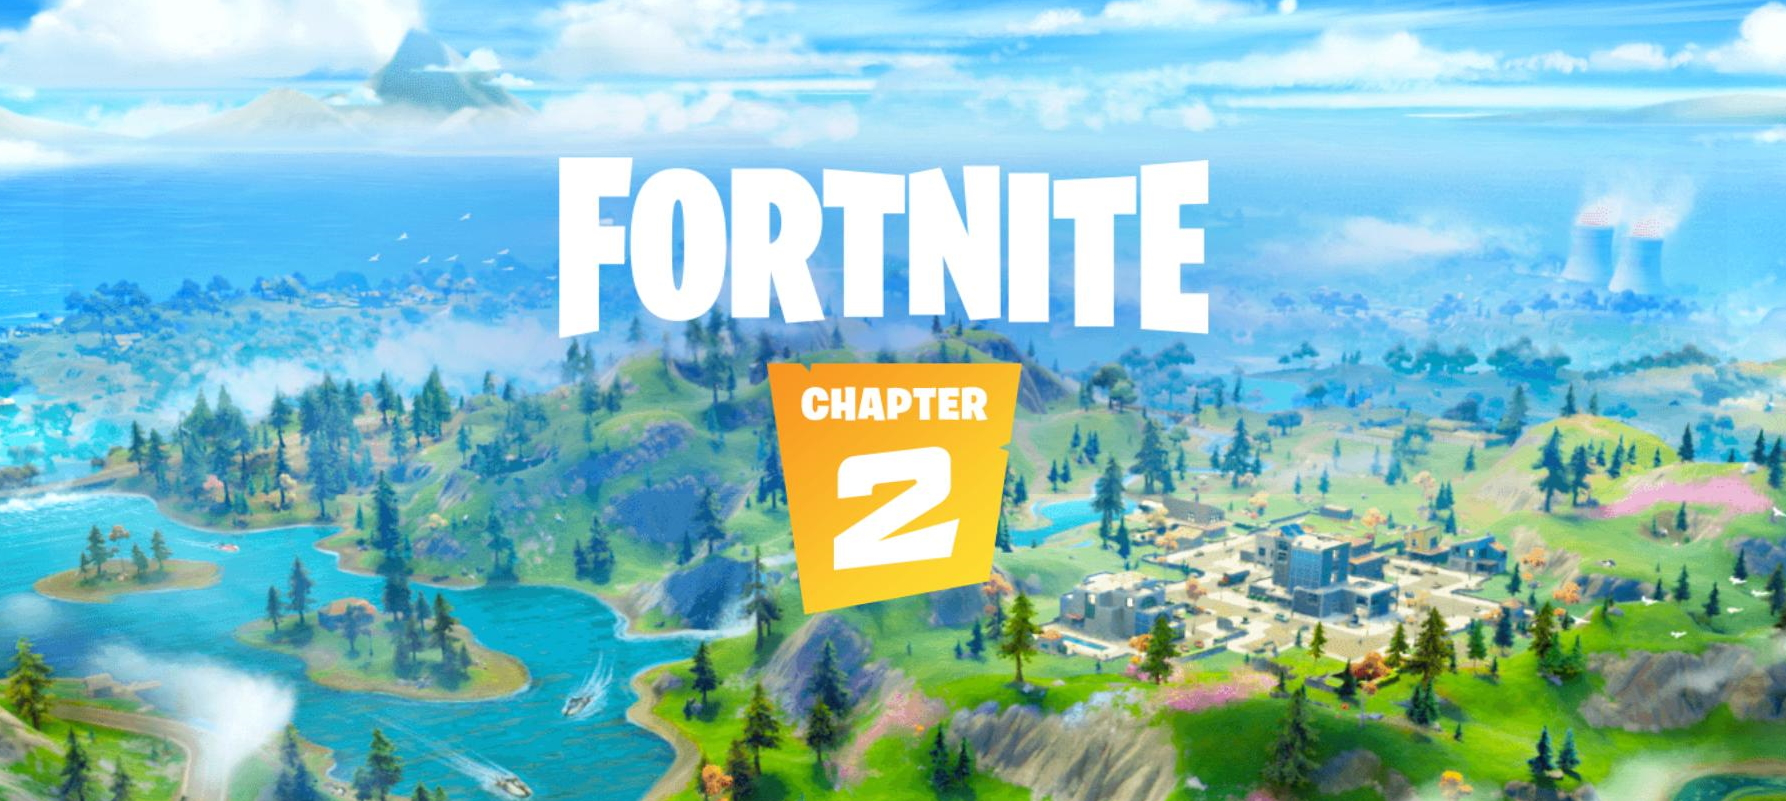 Fortnite Chapter 2 Arrives With An All New Island And Water